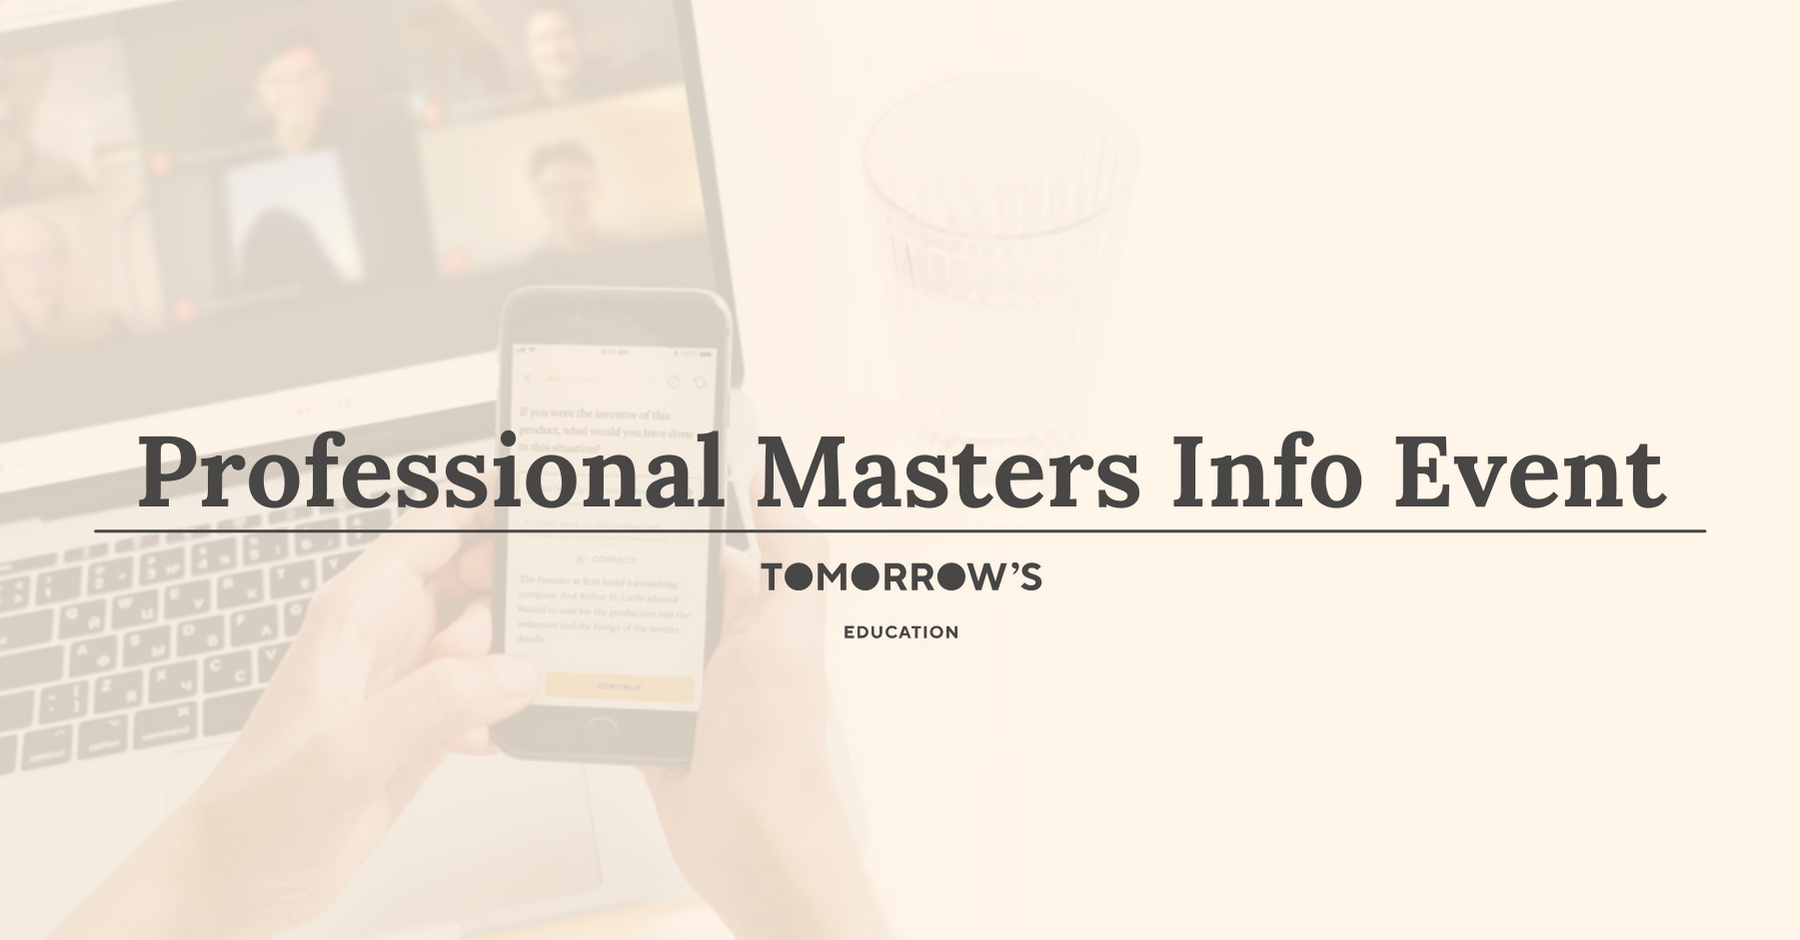 Professional Masters Info Event